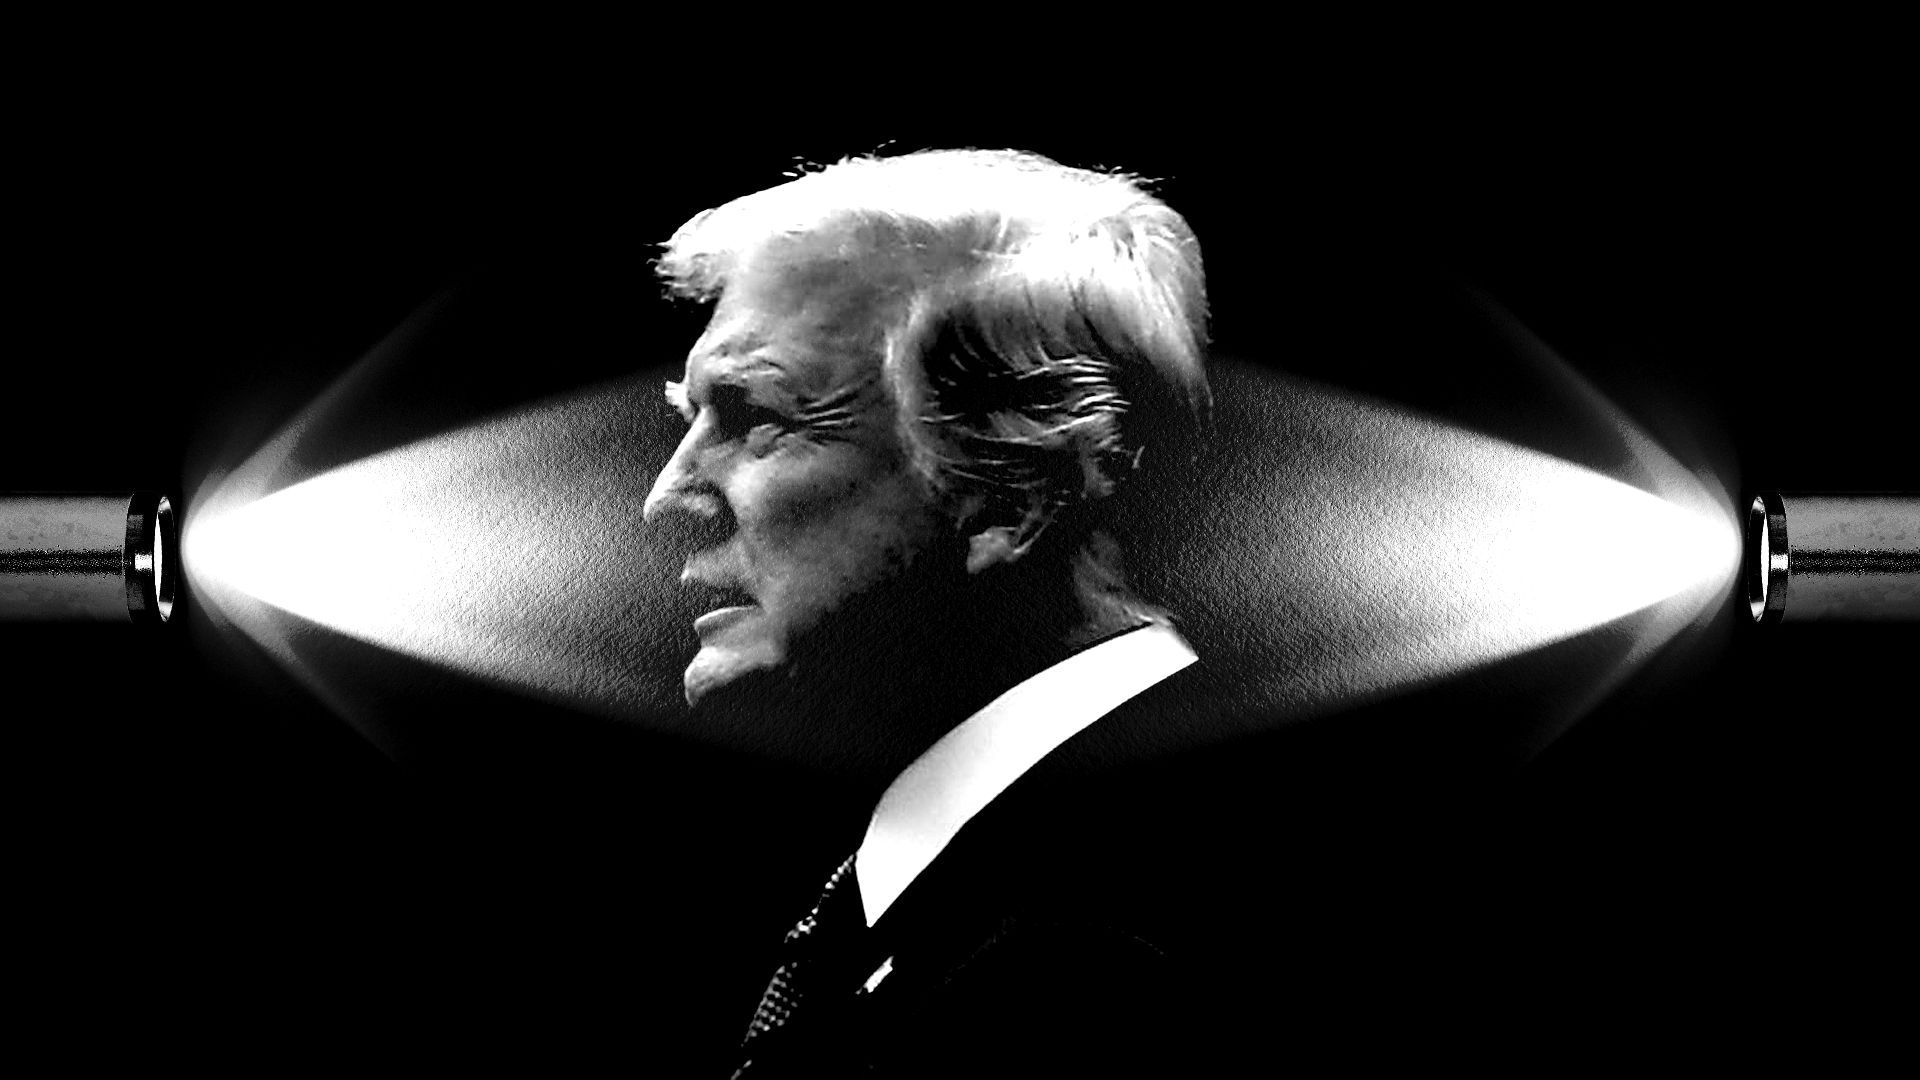 Illustration of Trump with flashlights pointing at him from two directions